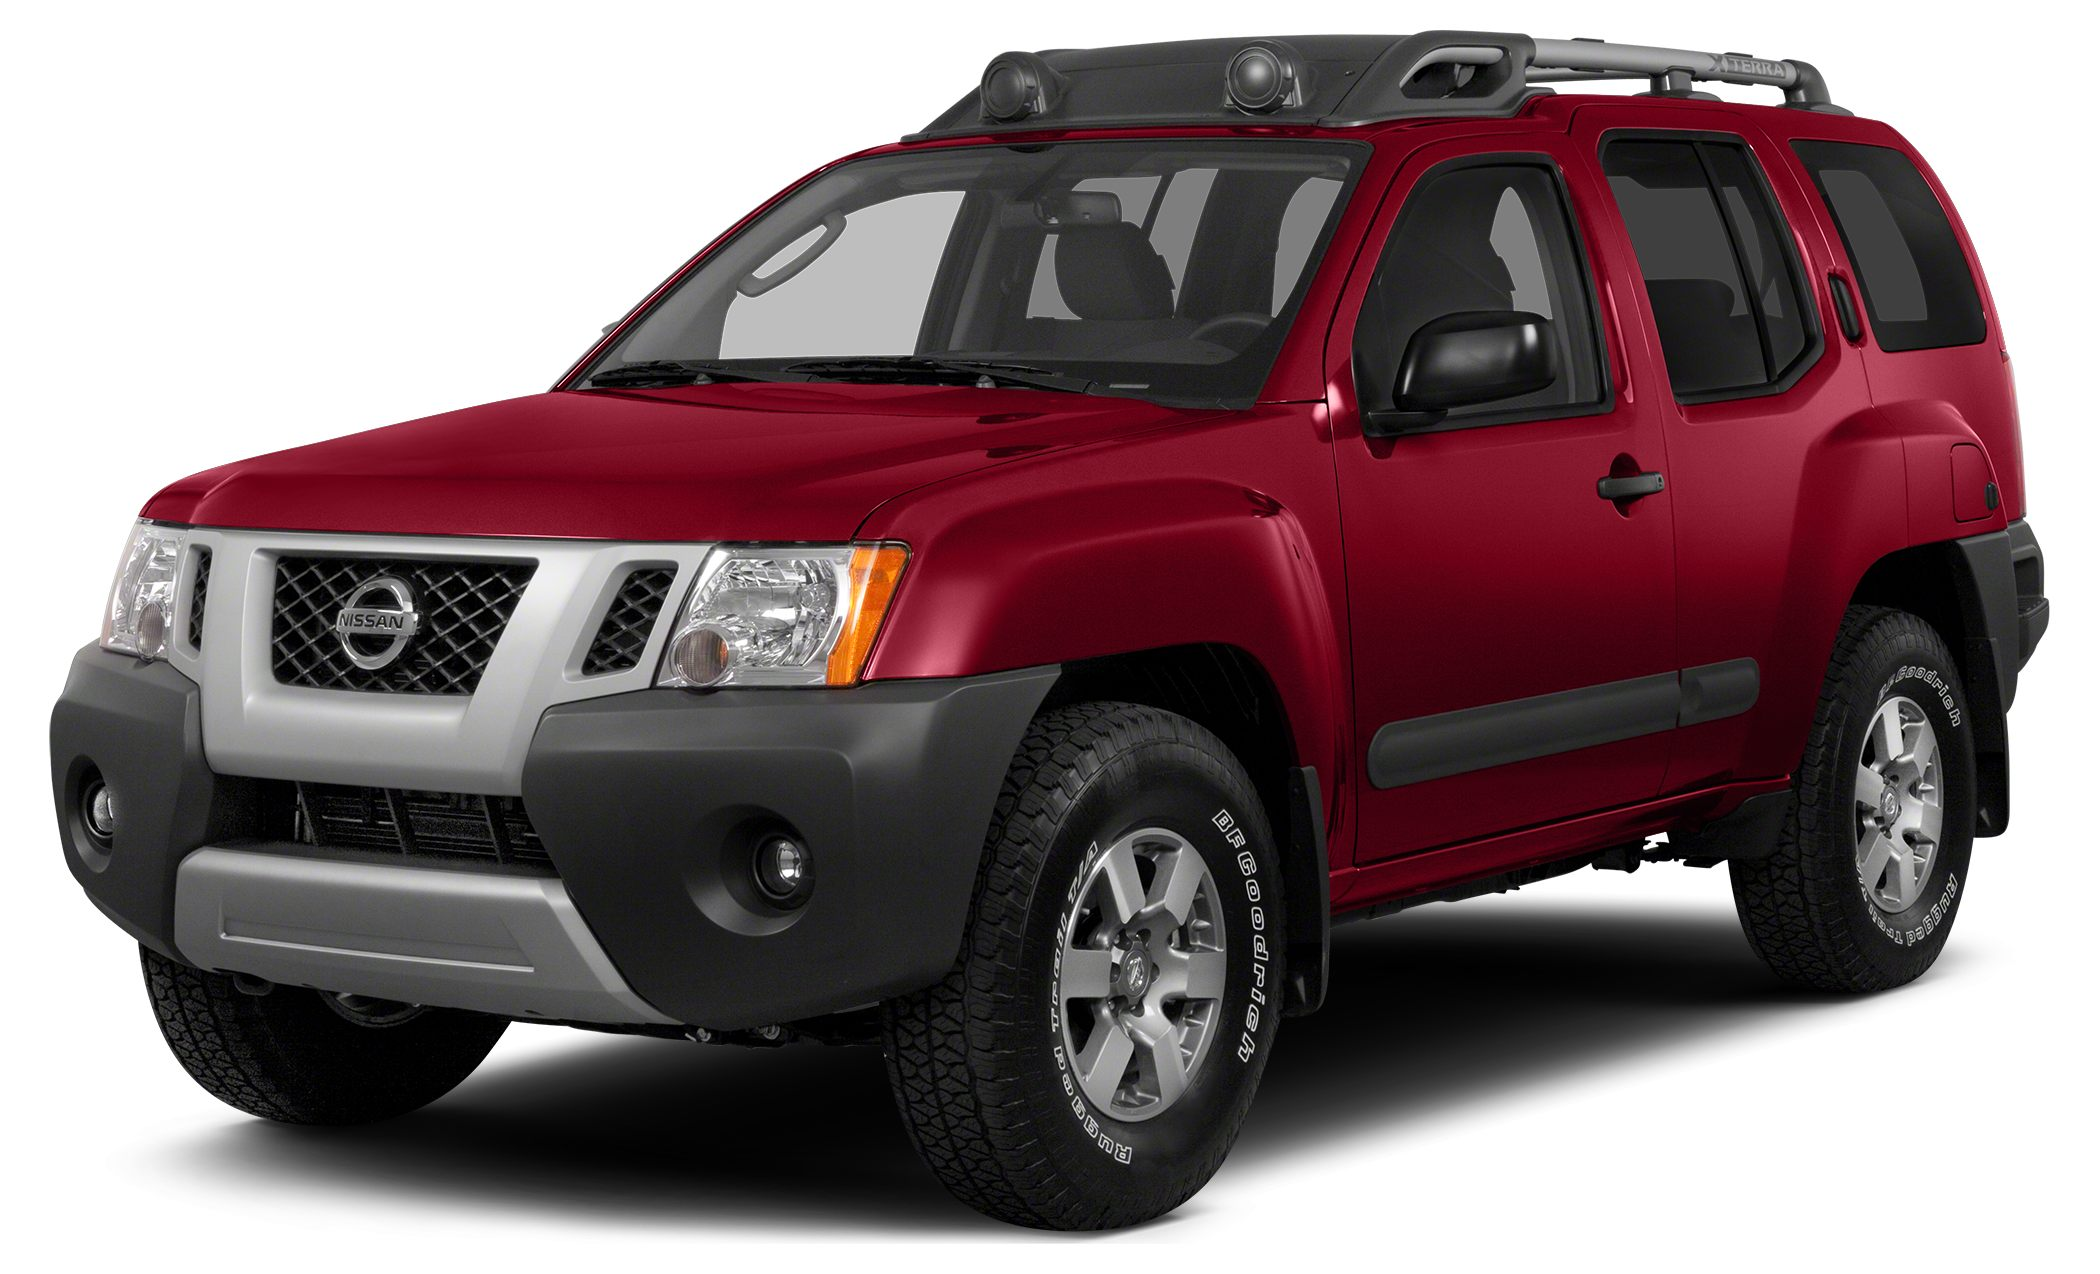 2015 Nissan Xterra PRO-4X Hold on to your seats Nissan has done it again They have built some